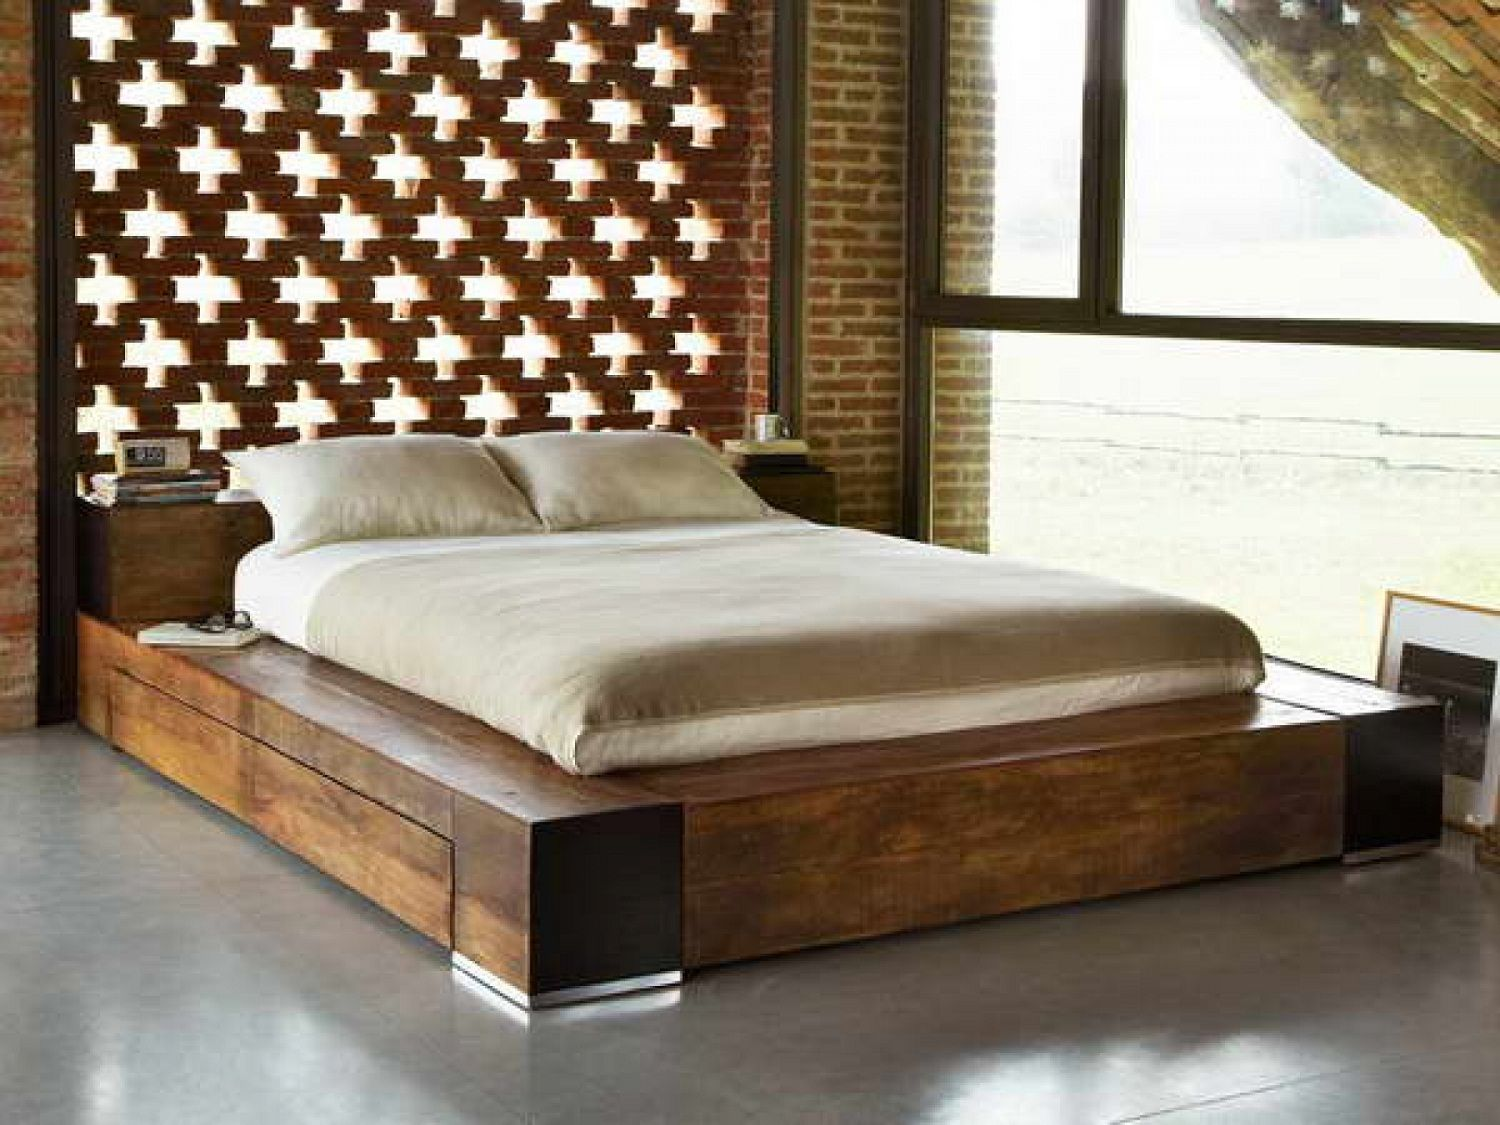 Bedroom Diy Custom Low Profile Platform Wooden Bed Frame With